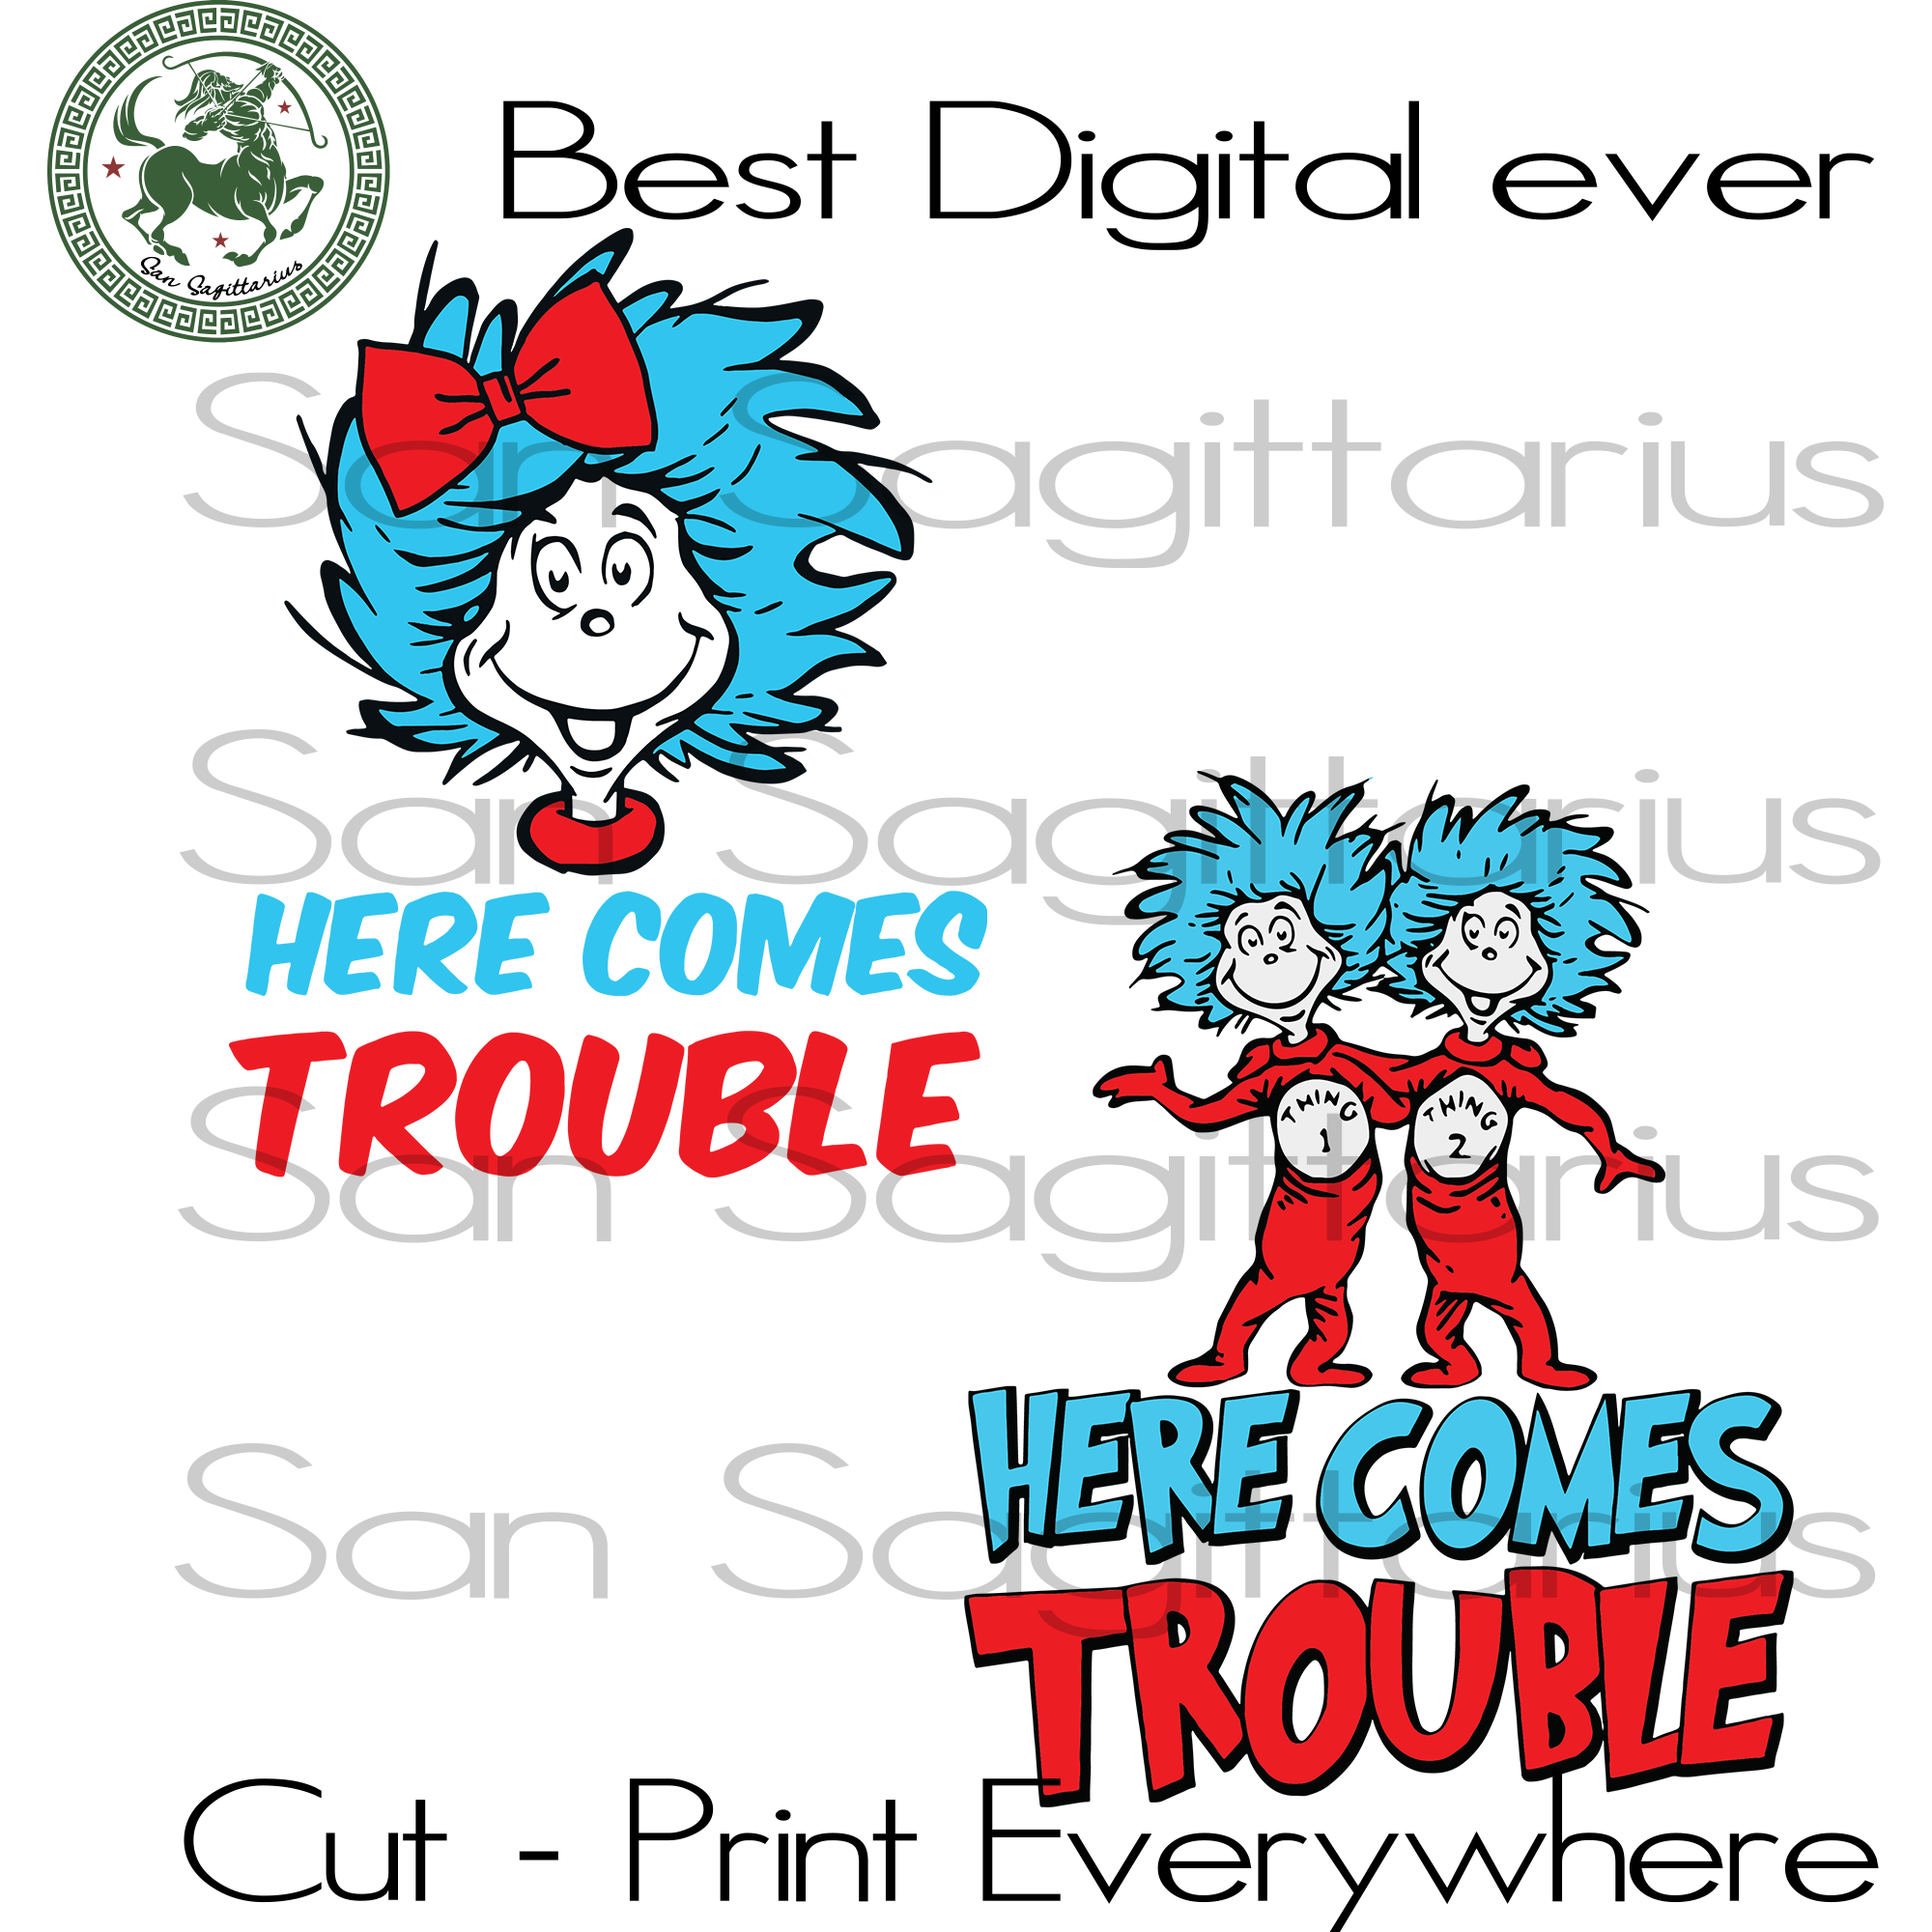 Here Come Trouble, Dr Seuss svg, Dr Seuss Teacher Gift, Thing 1 Thing 2, Miss Thing Svg Files For Cricut Silhouette Instant Download | San Sagittarius